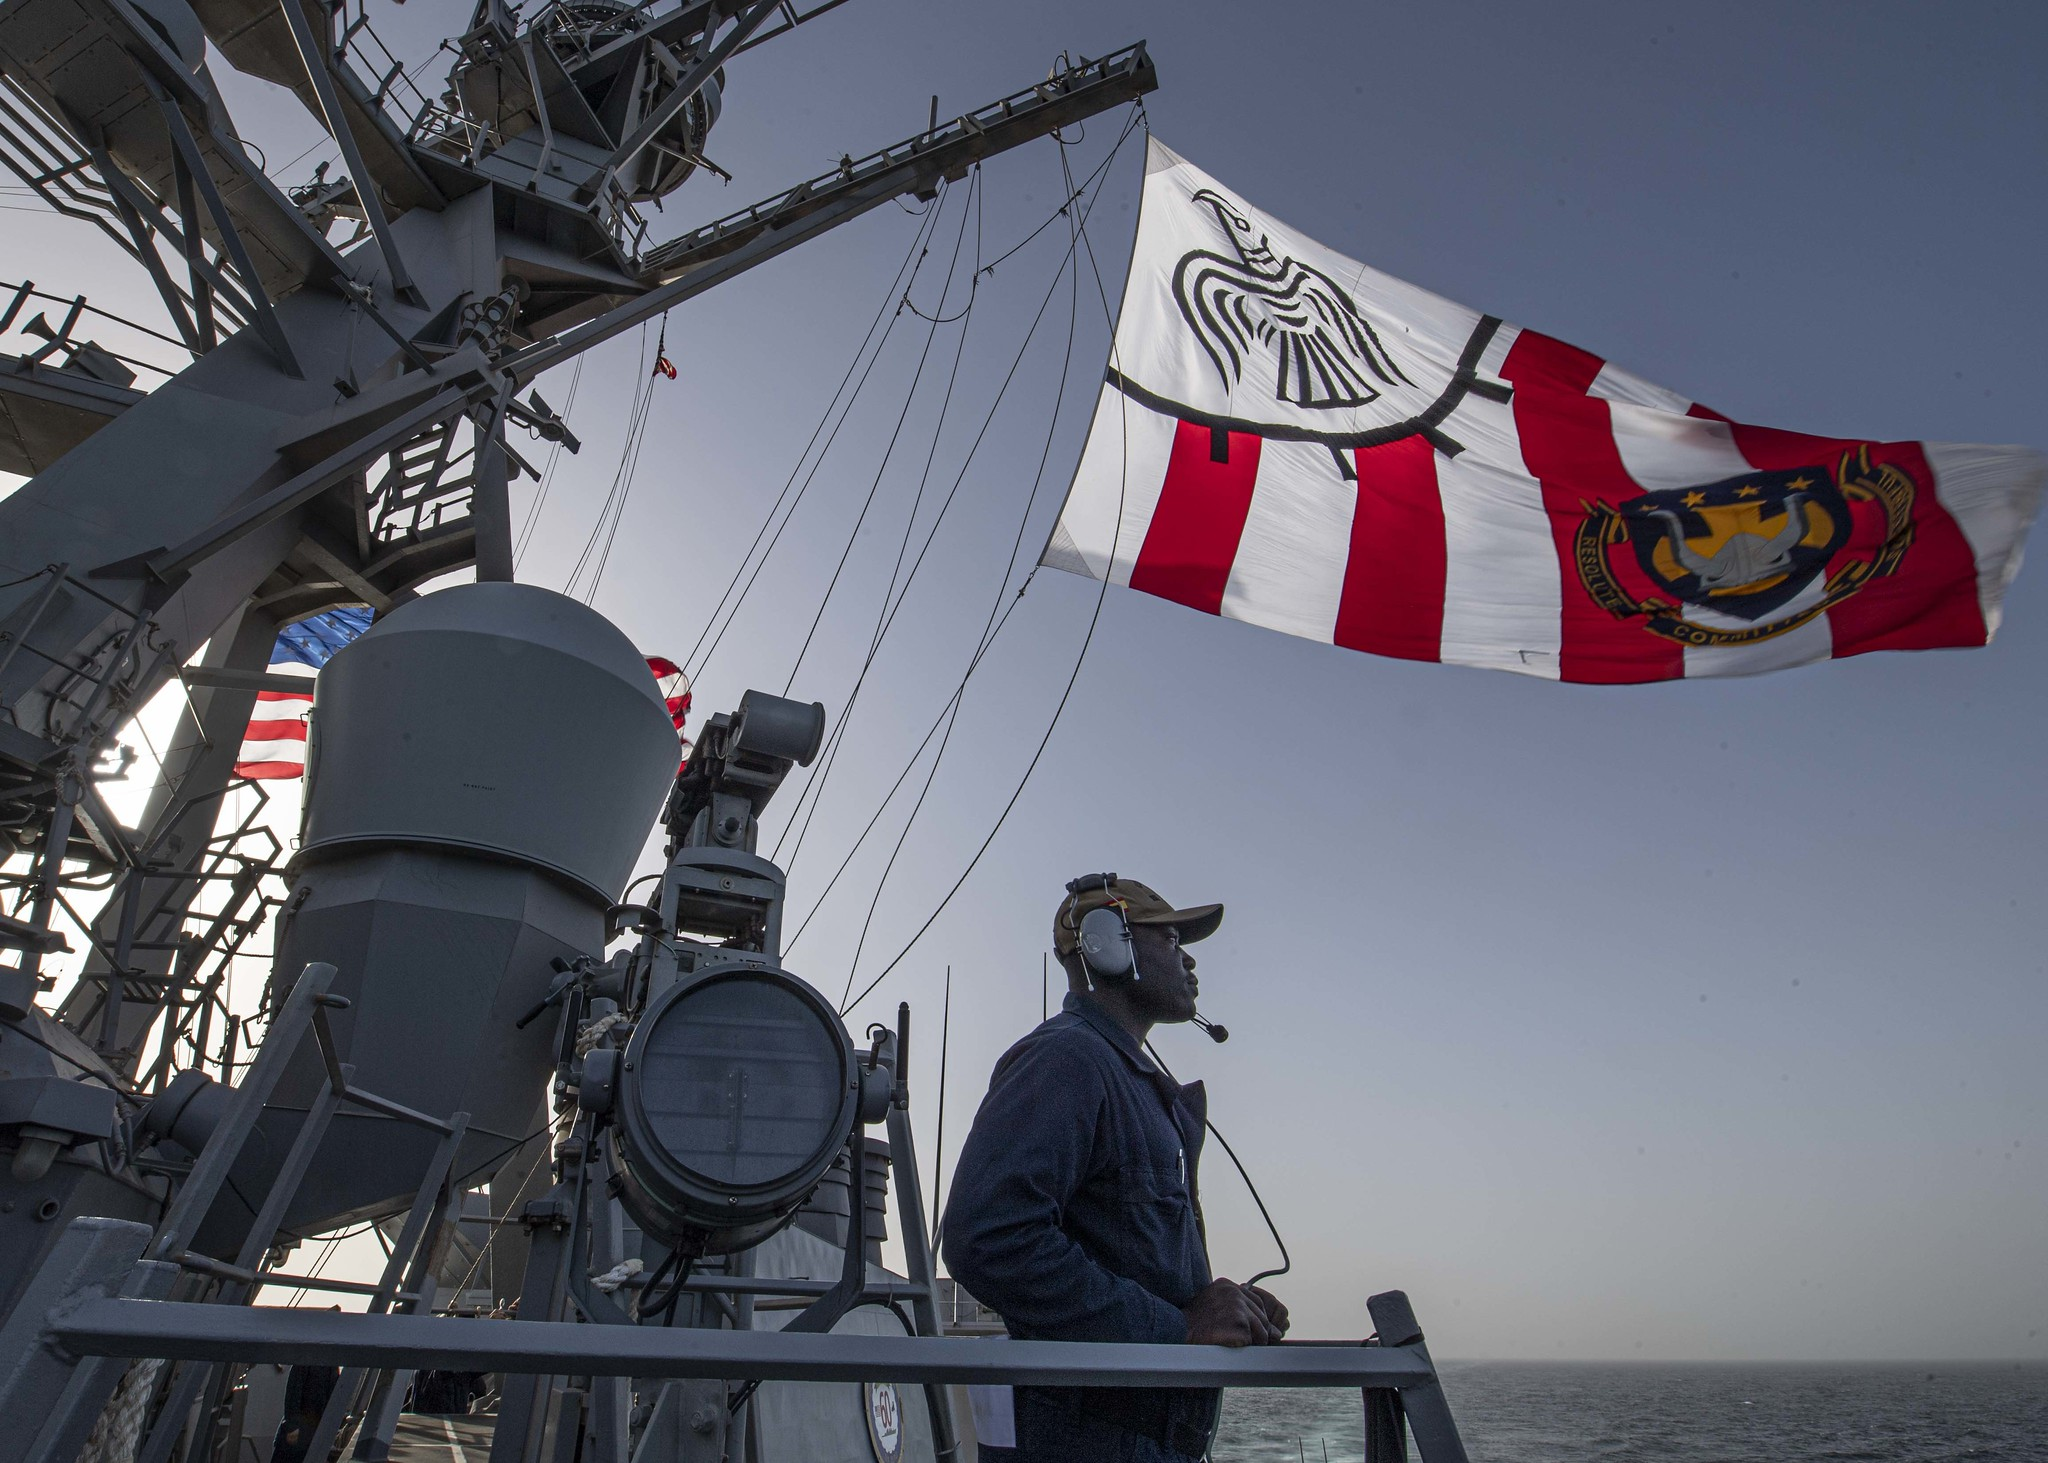 Seaman Divine Owoseni stands watch as the port lookout aboard the guided-missile destroyer Carney (DDG 64) on Feb. 27, 2020, in the Gulf of Oman. (Mass Communication Specialist 1st Class Fred Gray IV/Navy)